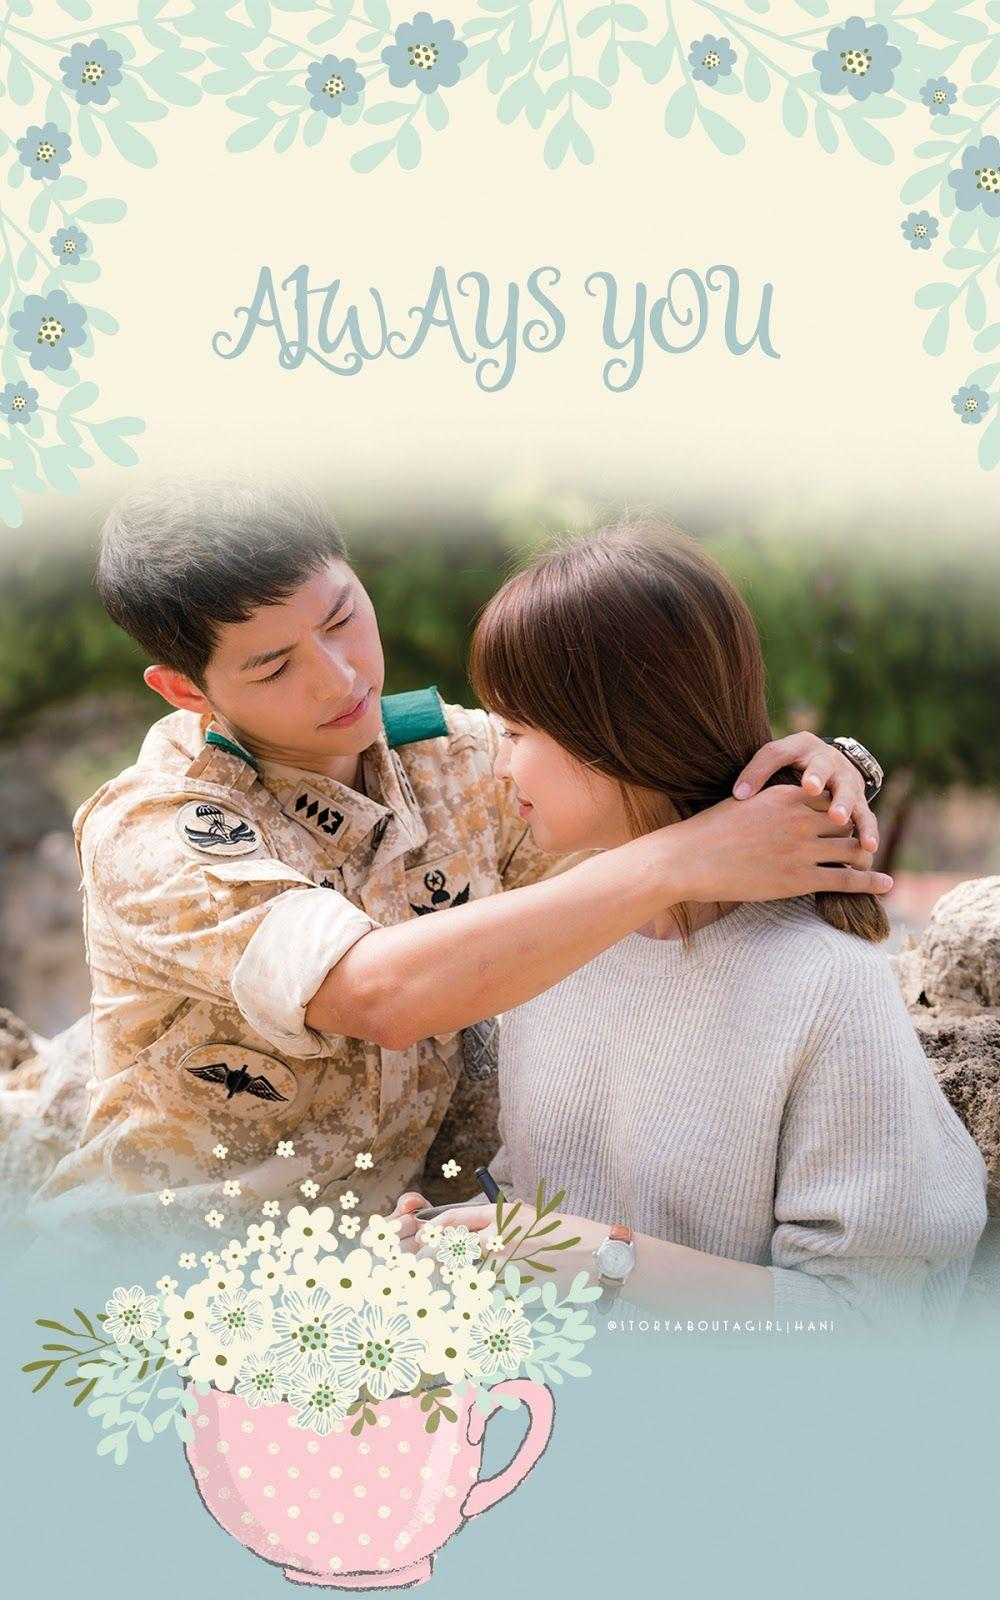 our lady peace!: 'Descendants Of The Sun' Phone Lock Screen